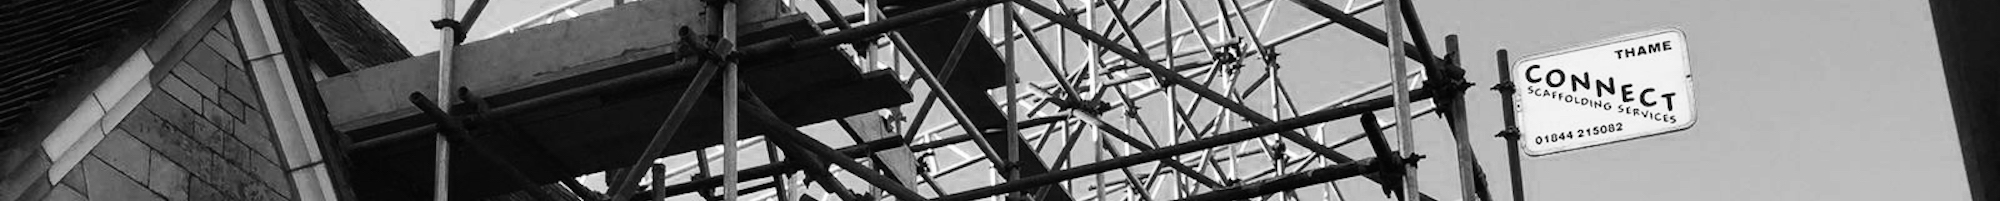 About Connect Scaffolding Services in Thame Oxfordshire